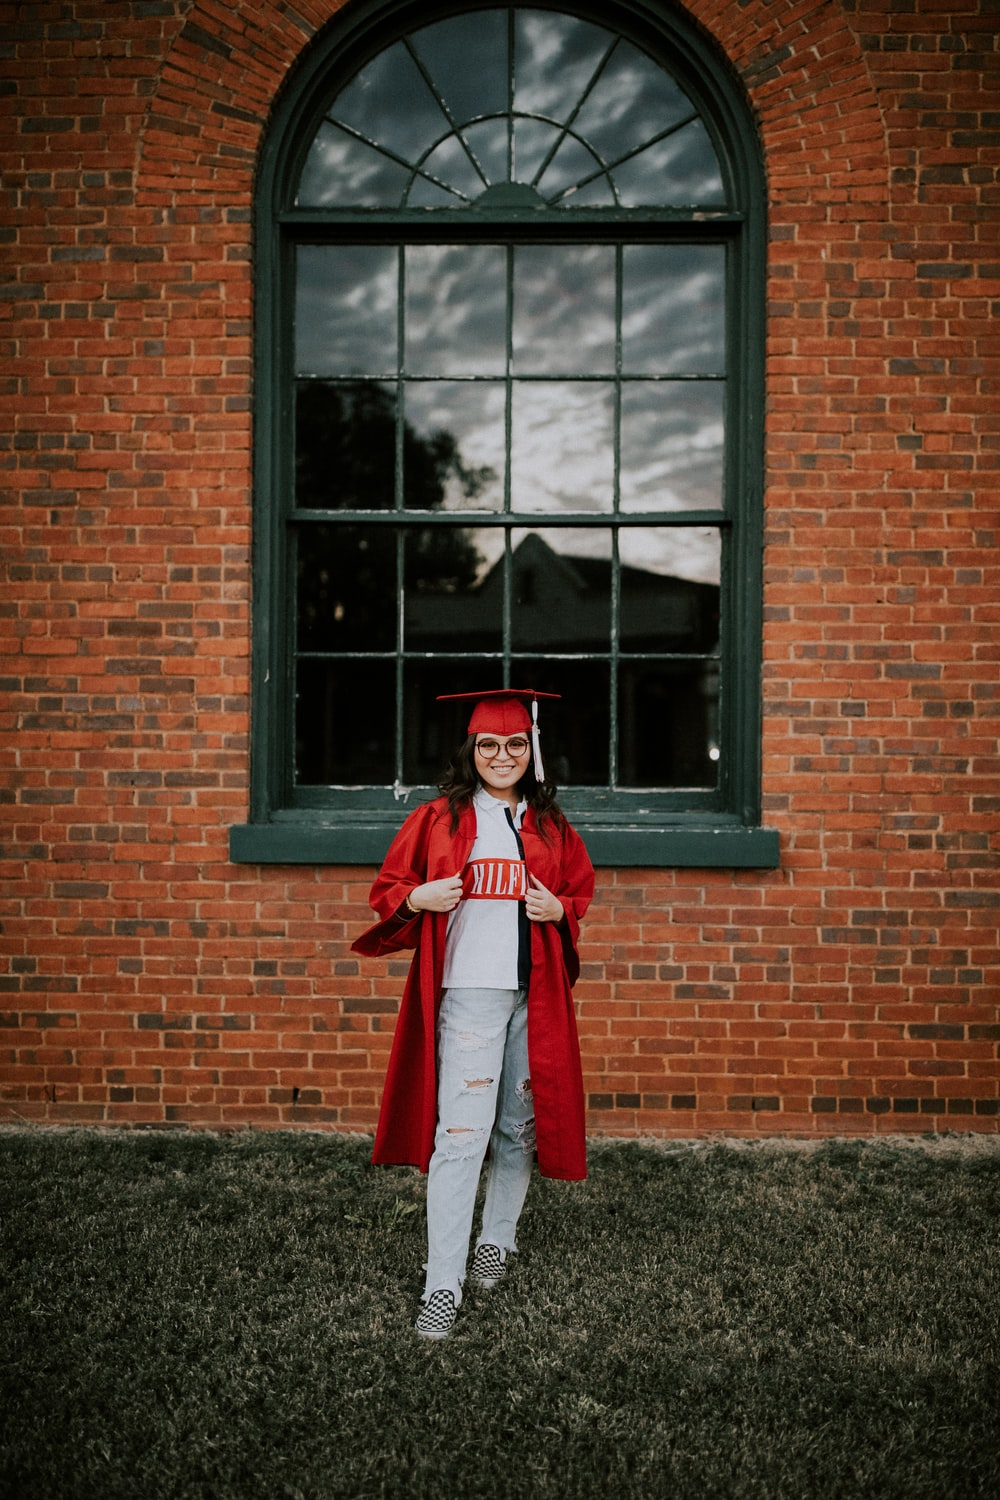 woman wearing academic dress and hat